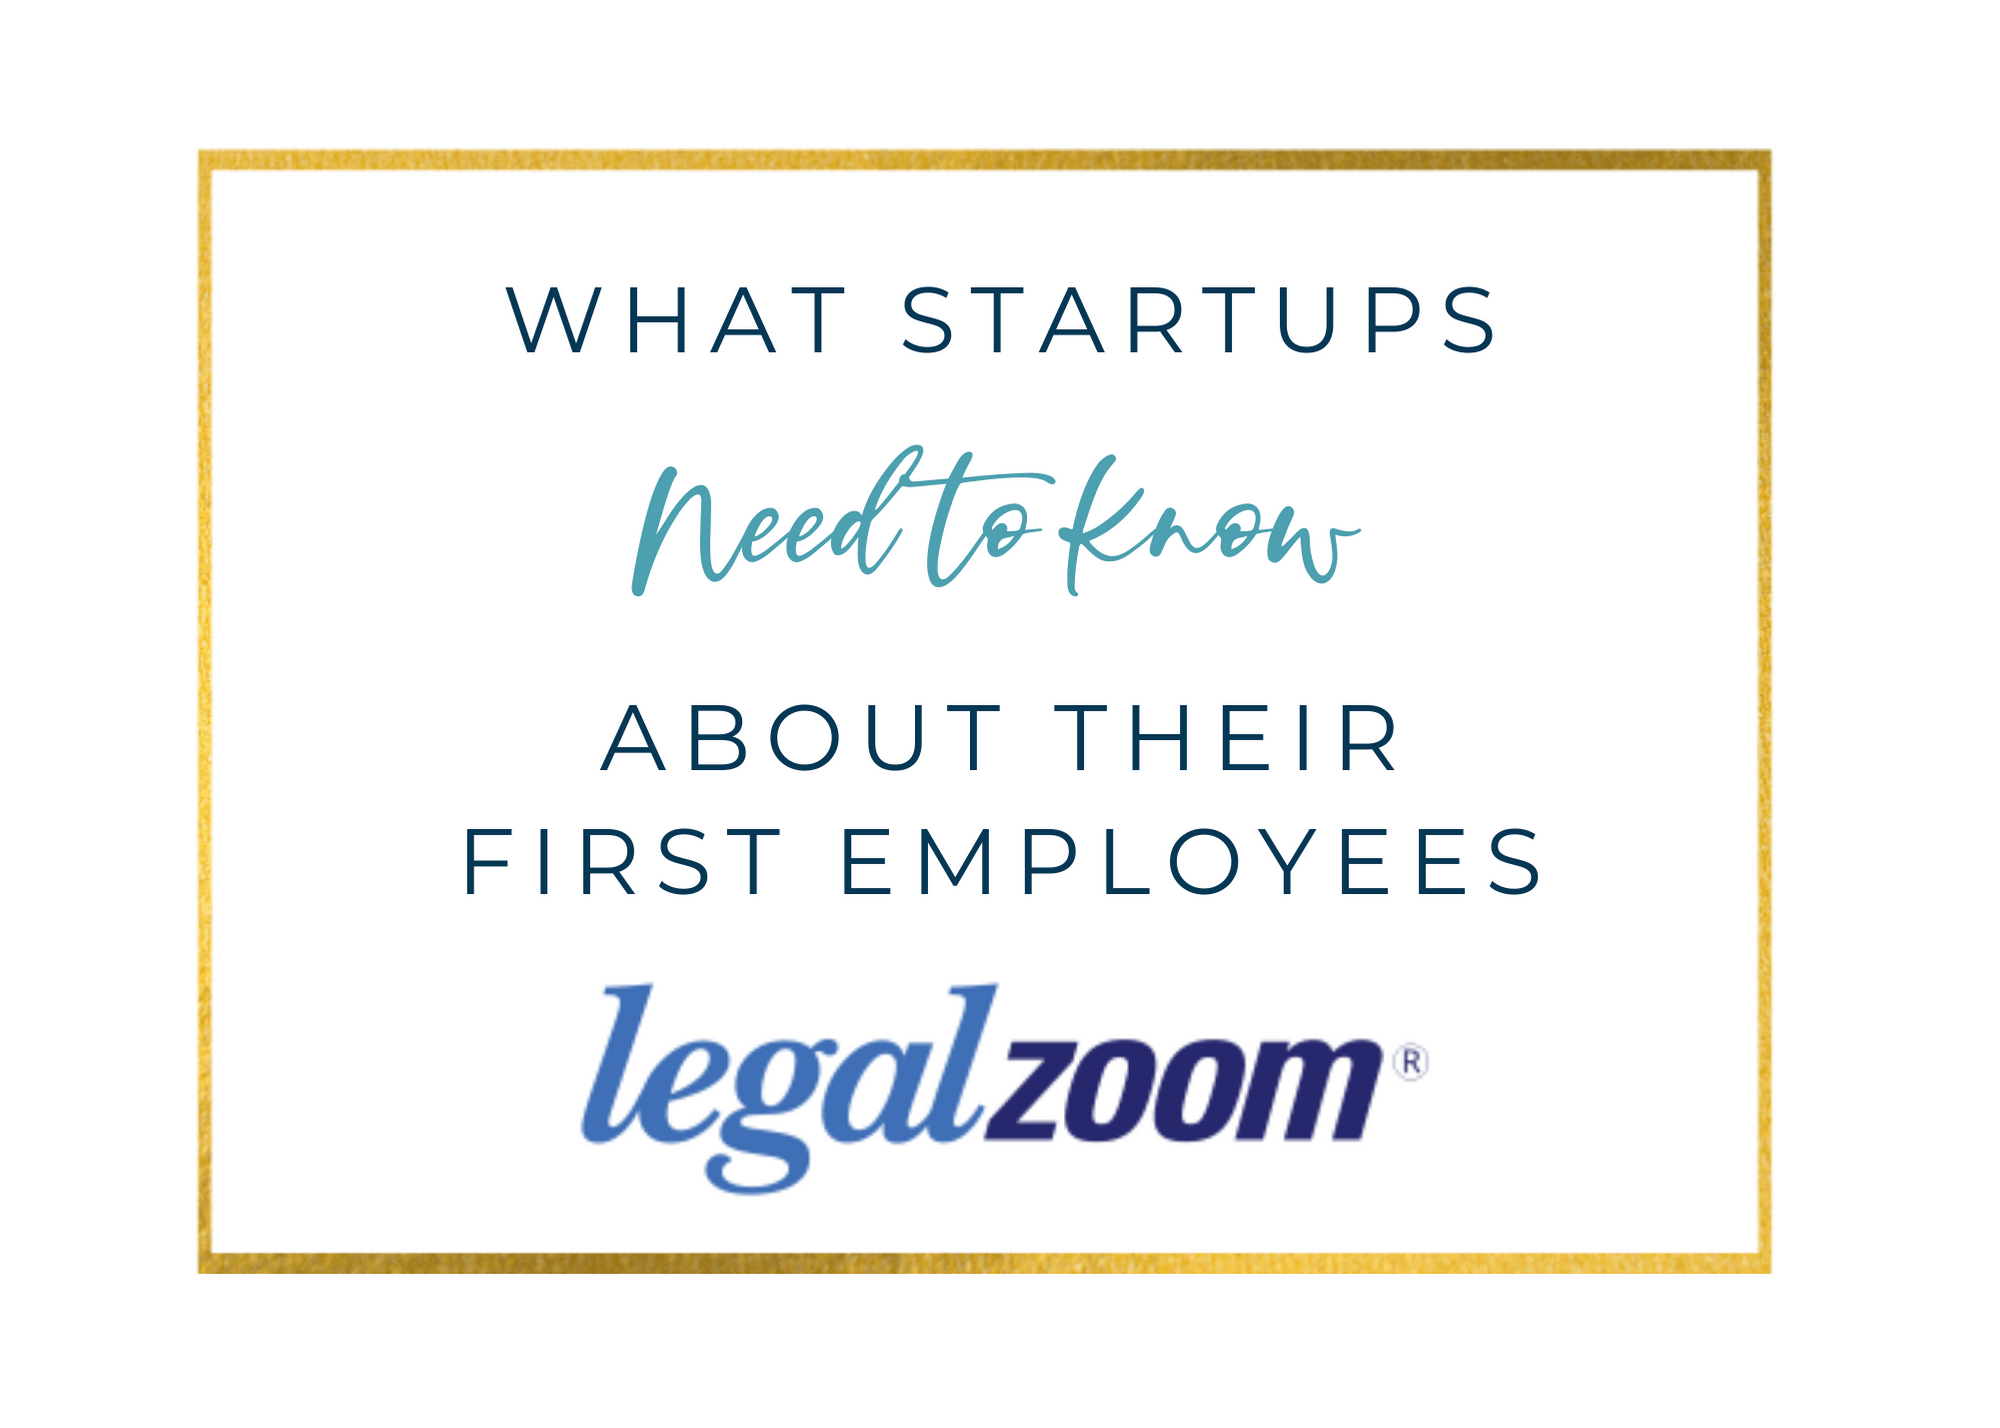 summit collaborations legal zoom What Startups Need to Know about Their First Employees